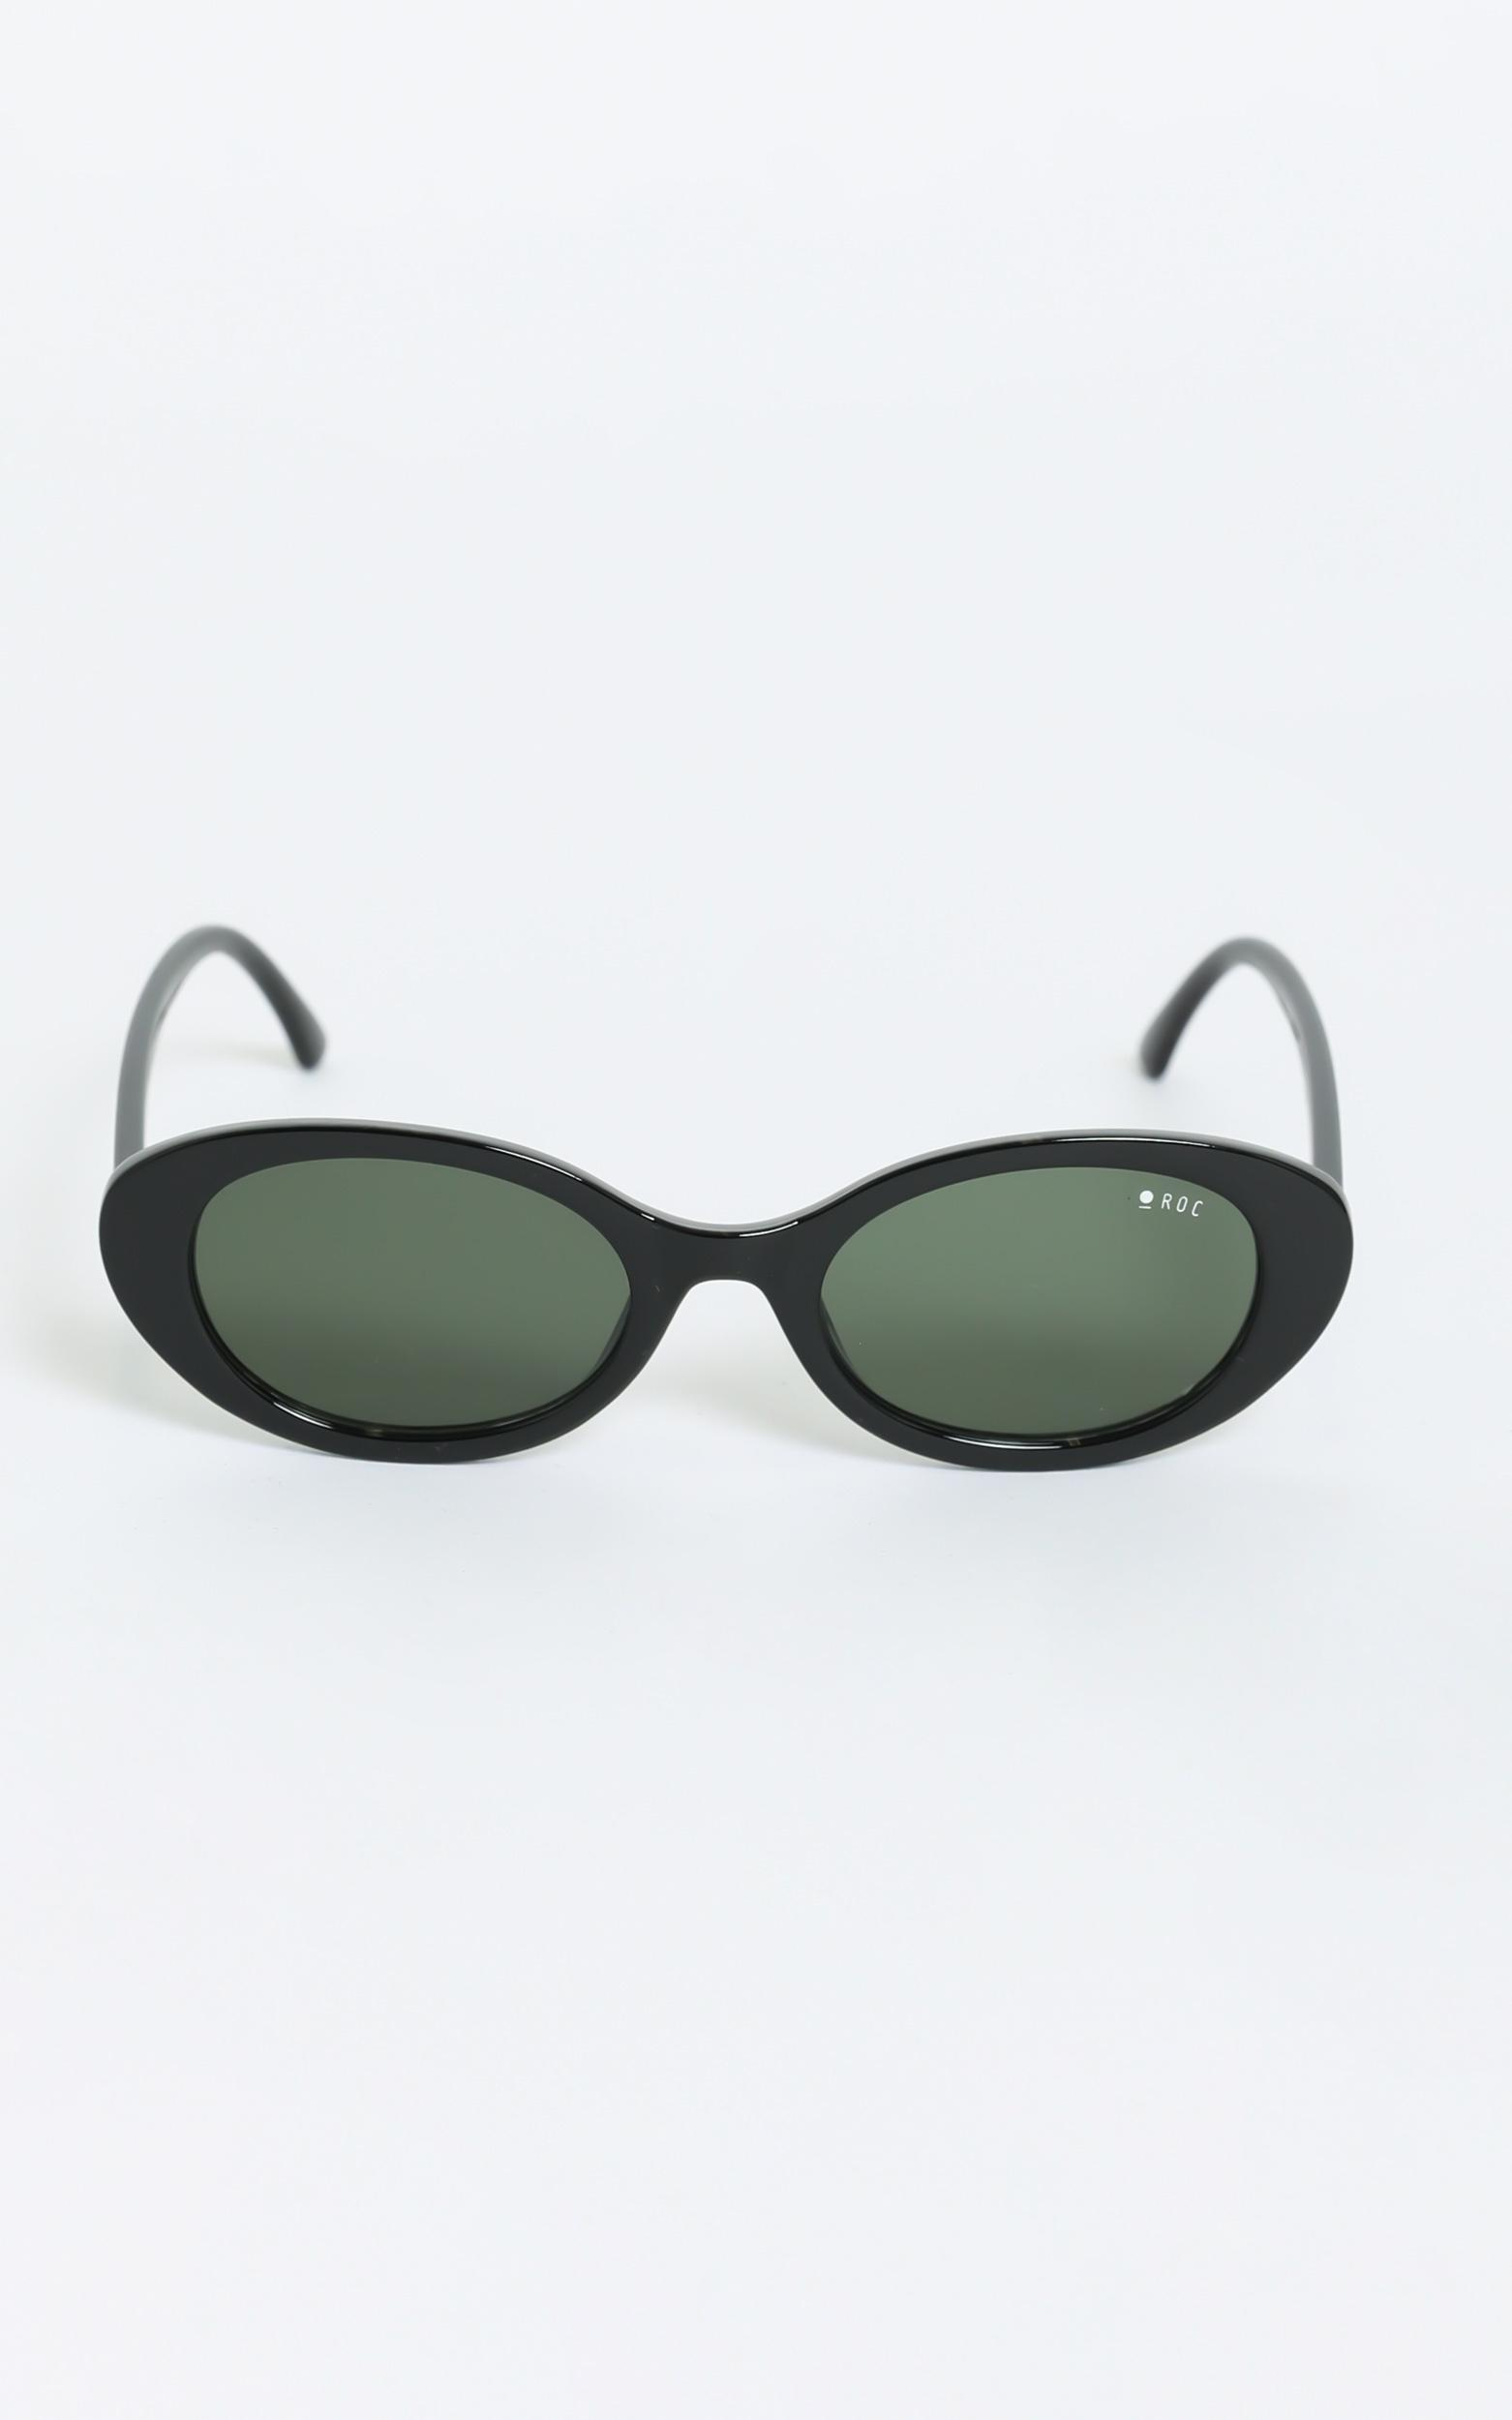 Roc - Flirty Sunglasses in Black, , hi-res image number null